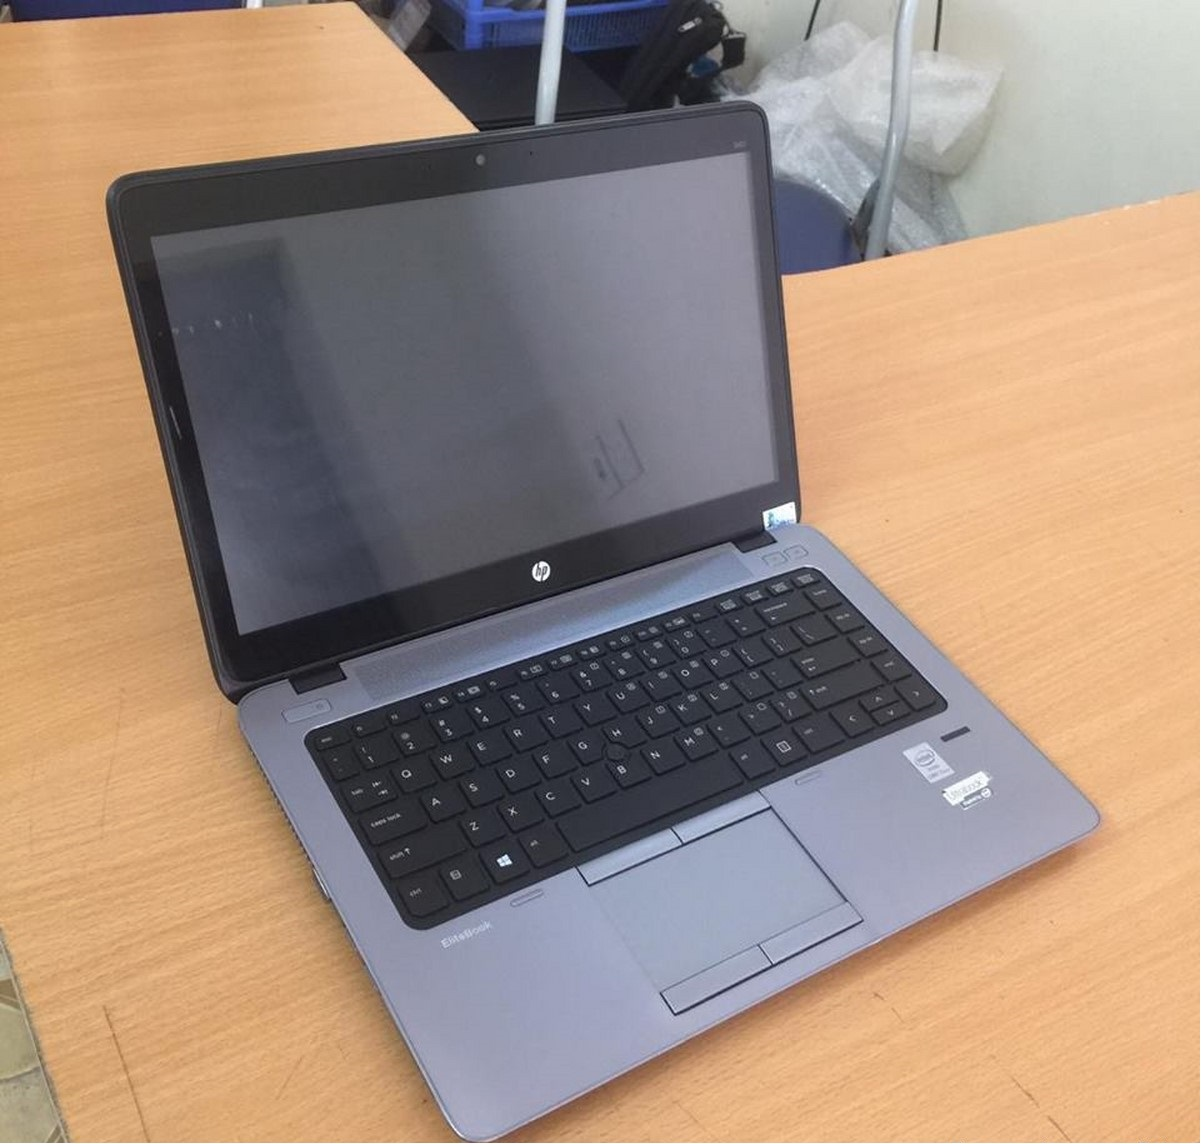 HP EliteBook 840 G1 i5-4310U 4GB RAM, 250GB HDD